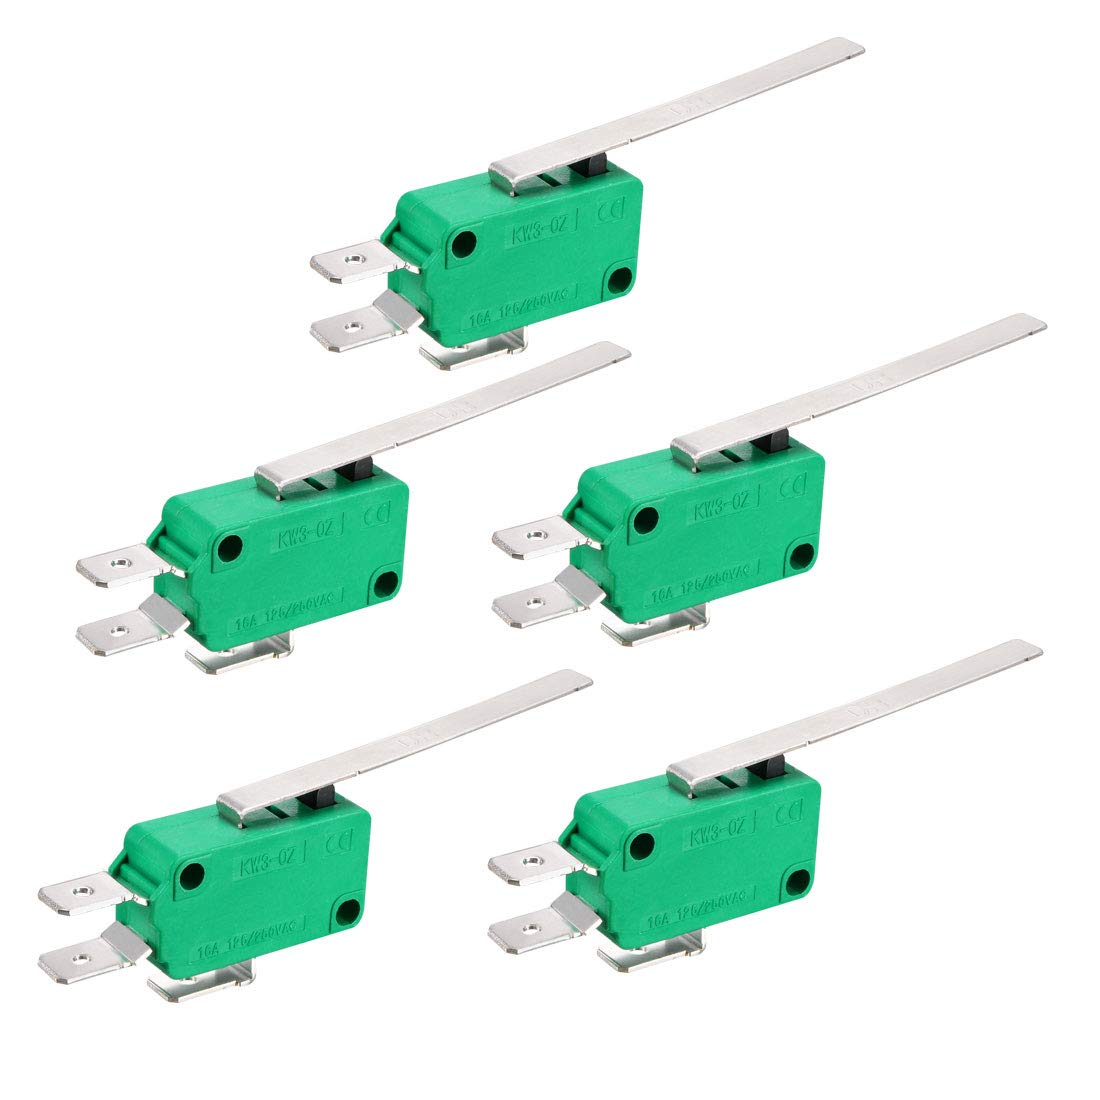 uxcell 5PCS KW3-OZ 16A 125//250VAC Long Straight Hinge Lever Type SPDT NO NC Micro Limit Switches